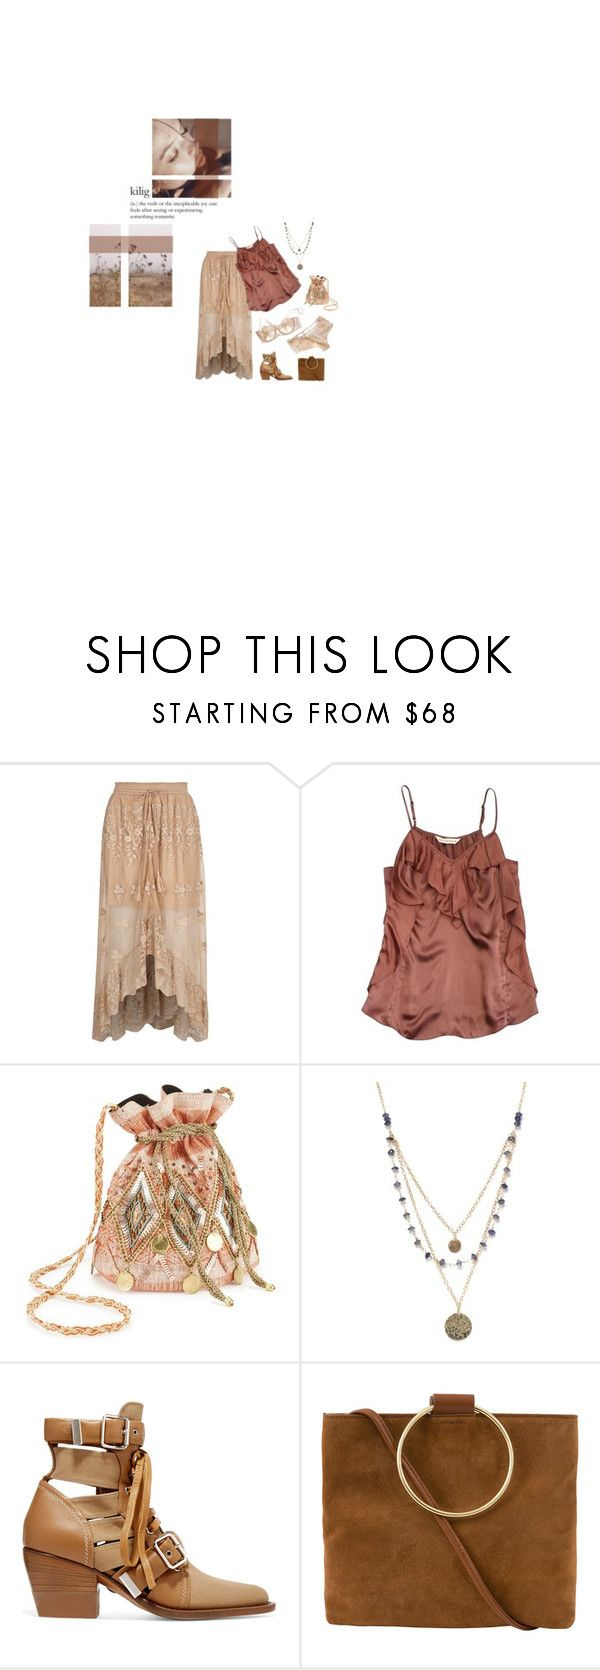 """""""Kiss mE on tHe chEek and sAy gOOd- bYe"""" by nadinekenific ❤ liked on Polyvore featuring River Island, Rebecca Taylor, Miss Selfridge, Alicia Marilyn Designs, Chloé and Thacker"""